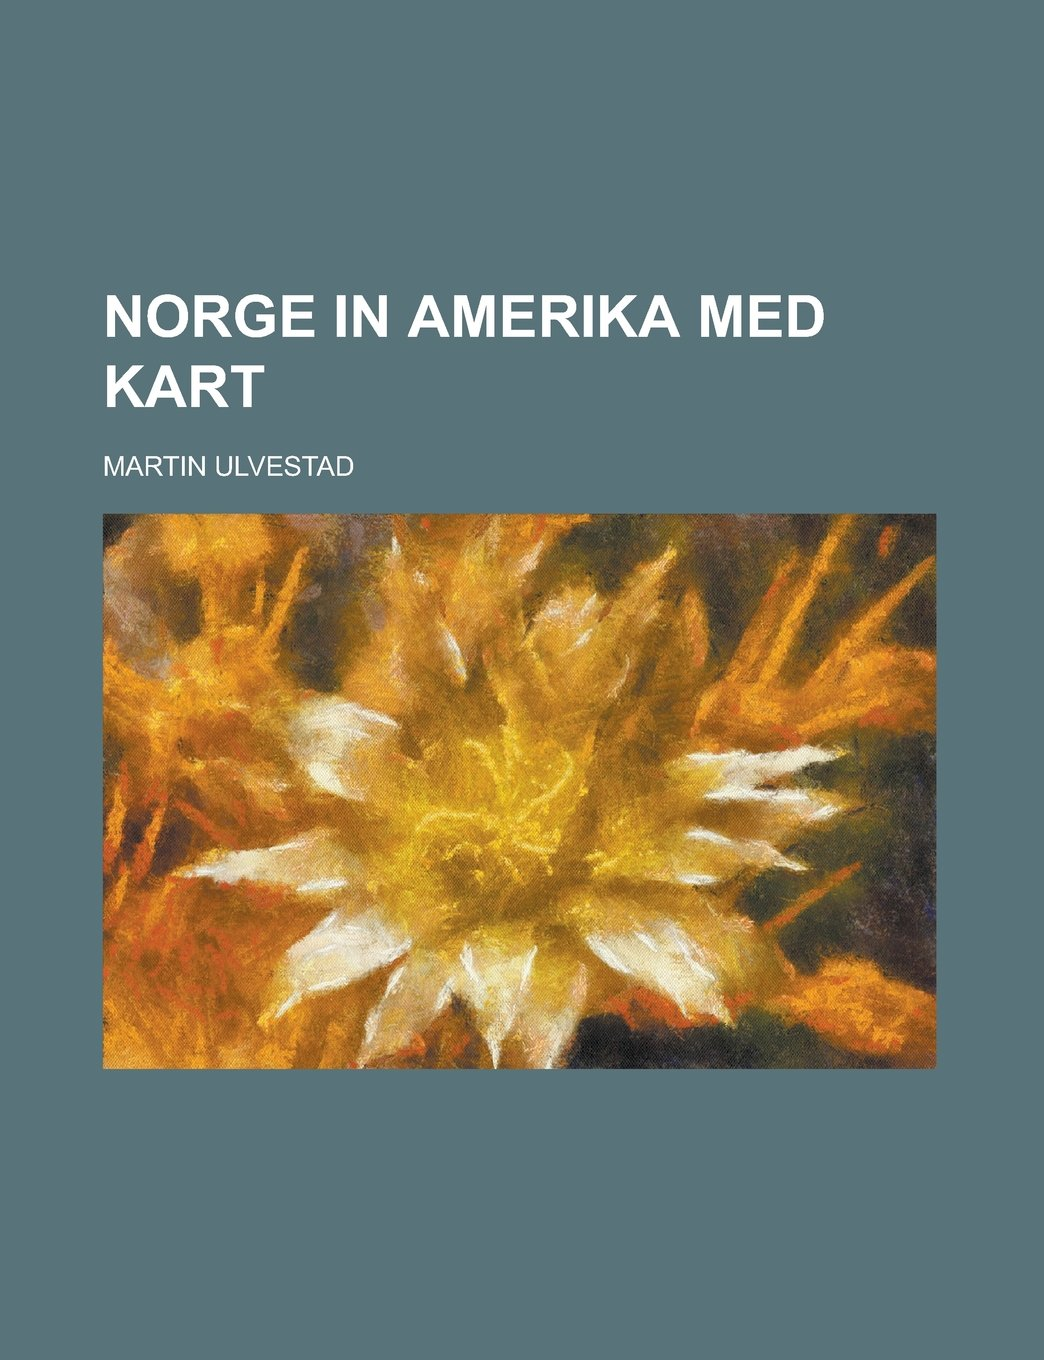 online kart norge Buy Norge in Amerika Med Kart Book Online at Low Prices in India  online kart norge